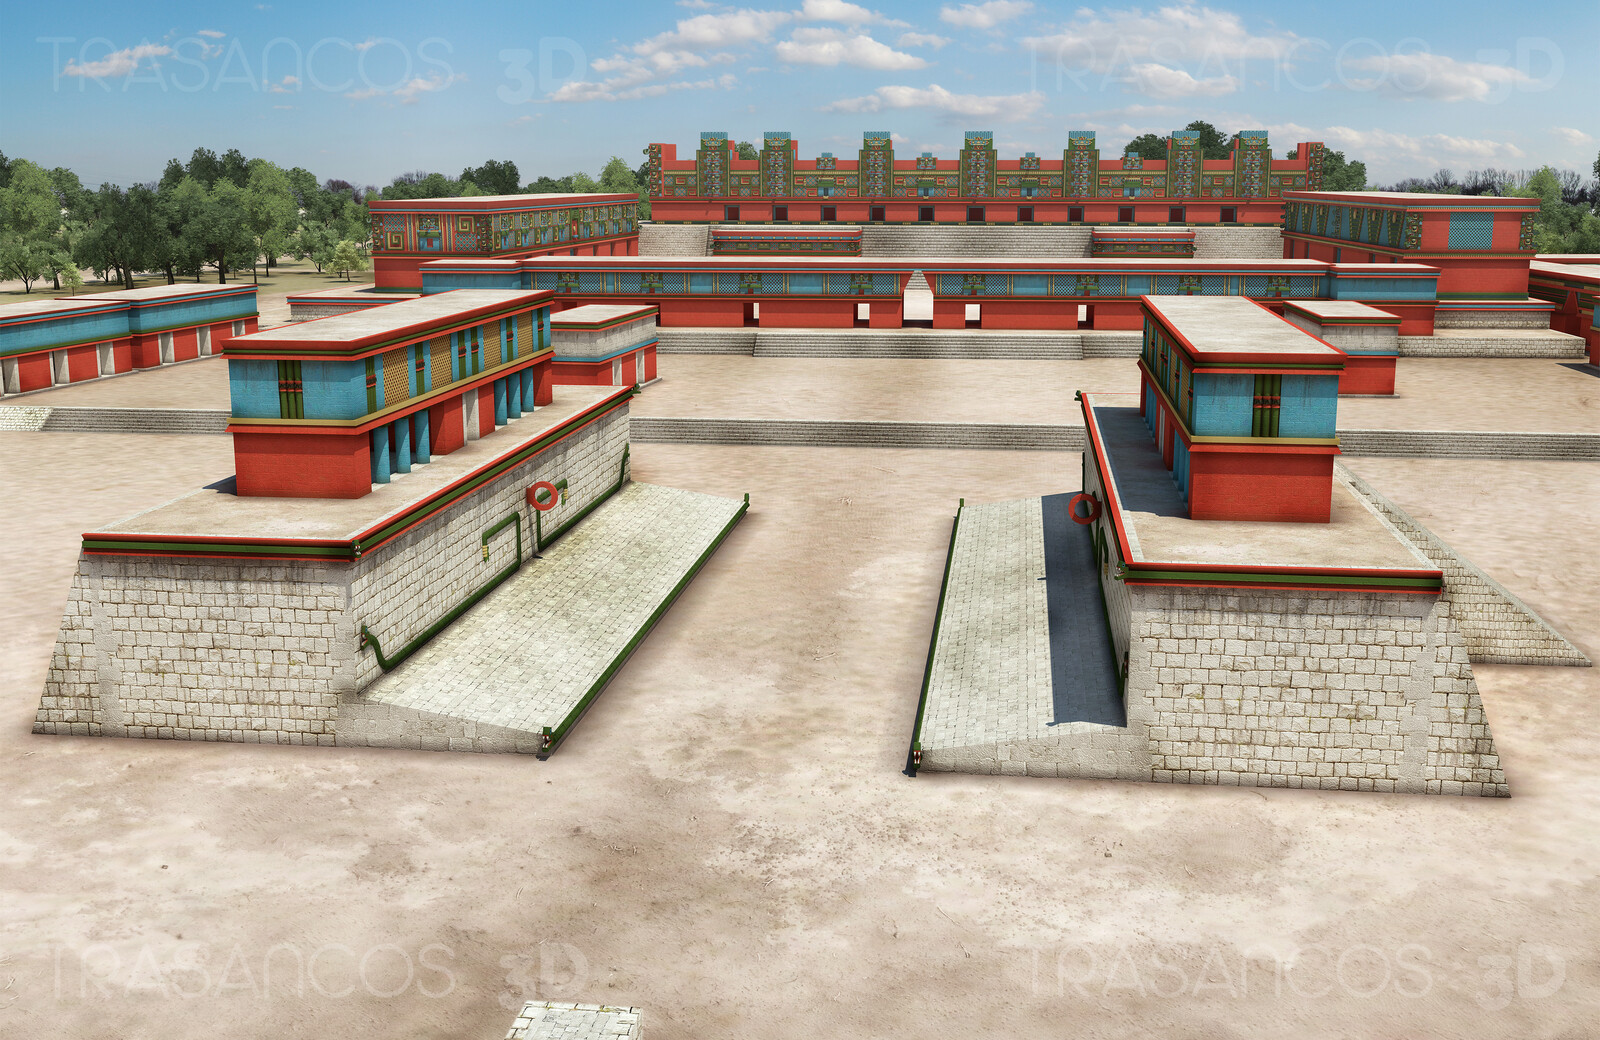 View of the ball court of Uxmal with the Nunnery Quadrangle at the Background. Modeled in collaboration with: - Alejandro Soriano - Diego Blanco